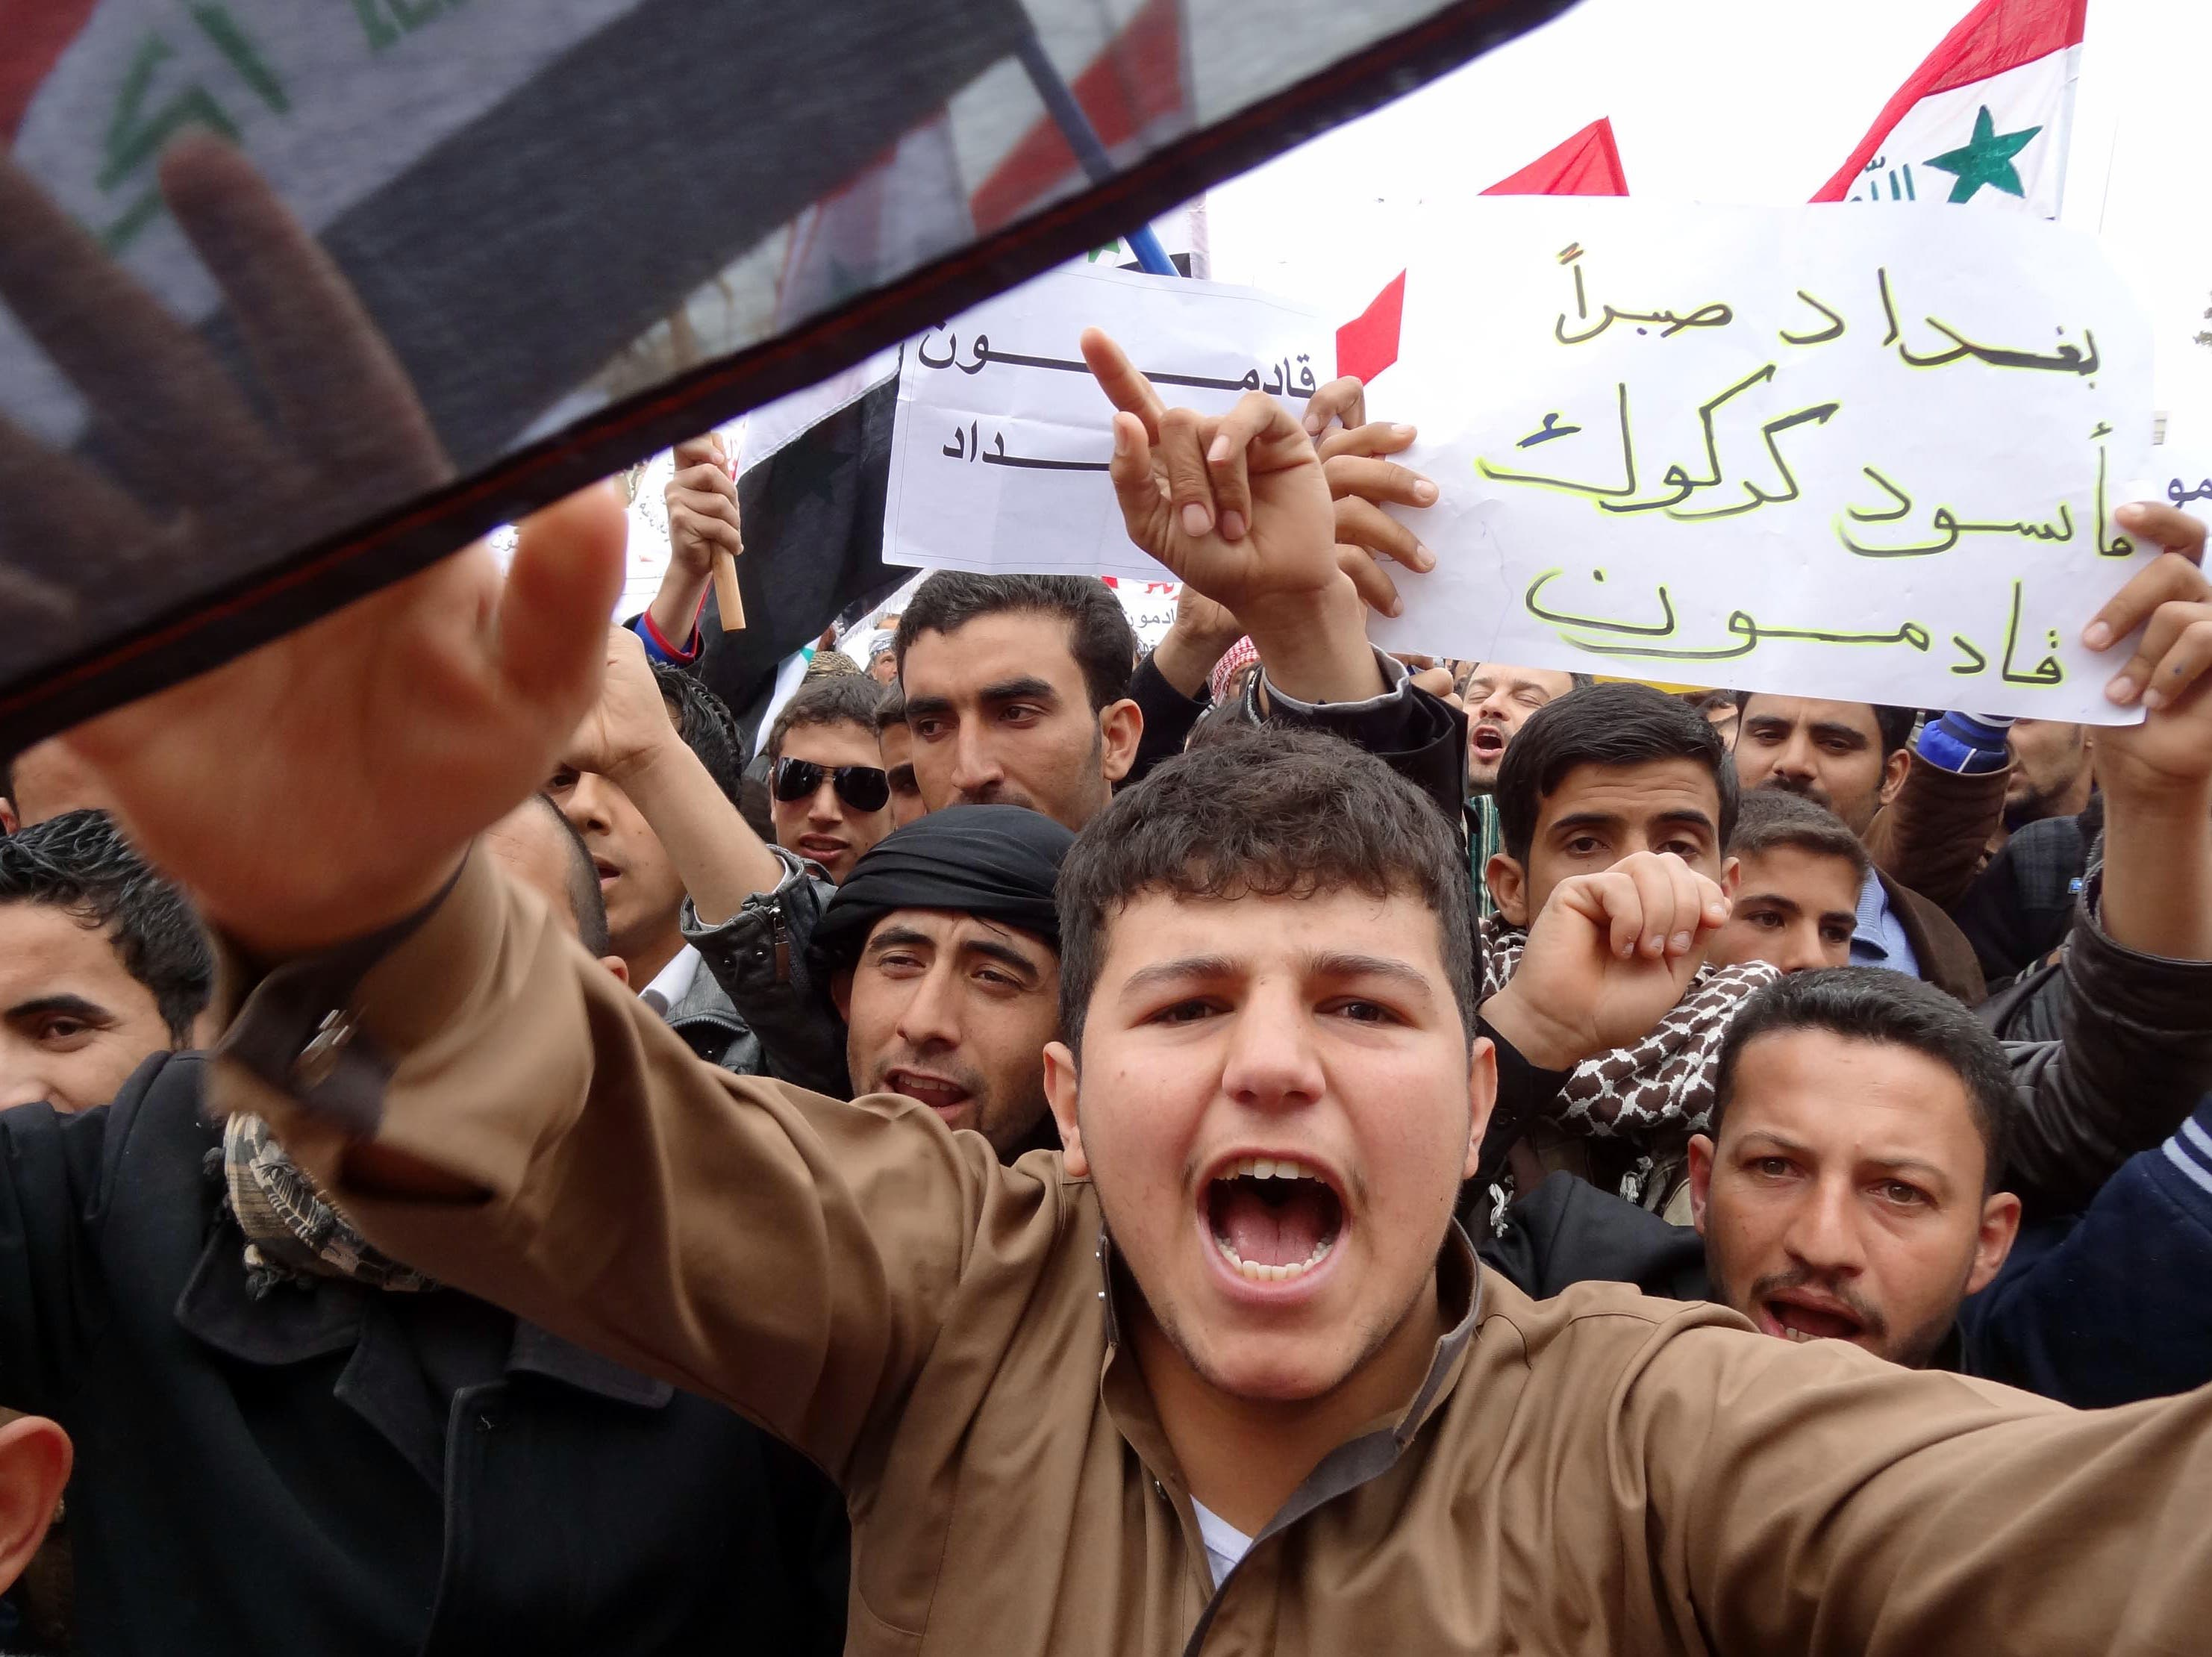 Iraqis shout slogans during an anti-government protest at the end of Friday prayers in the ethnically mixed city of Kirkuk,  north of Baghdad. Thousands of people in Sunni-majority areas of Iraq called for the government's fall amid a spike in violence that has accompanied a political stalemate two months before provincial polls. (AFP Photo/Marwan Ibrahim)